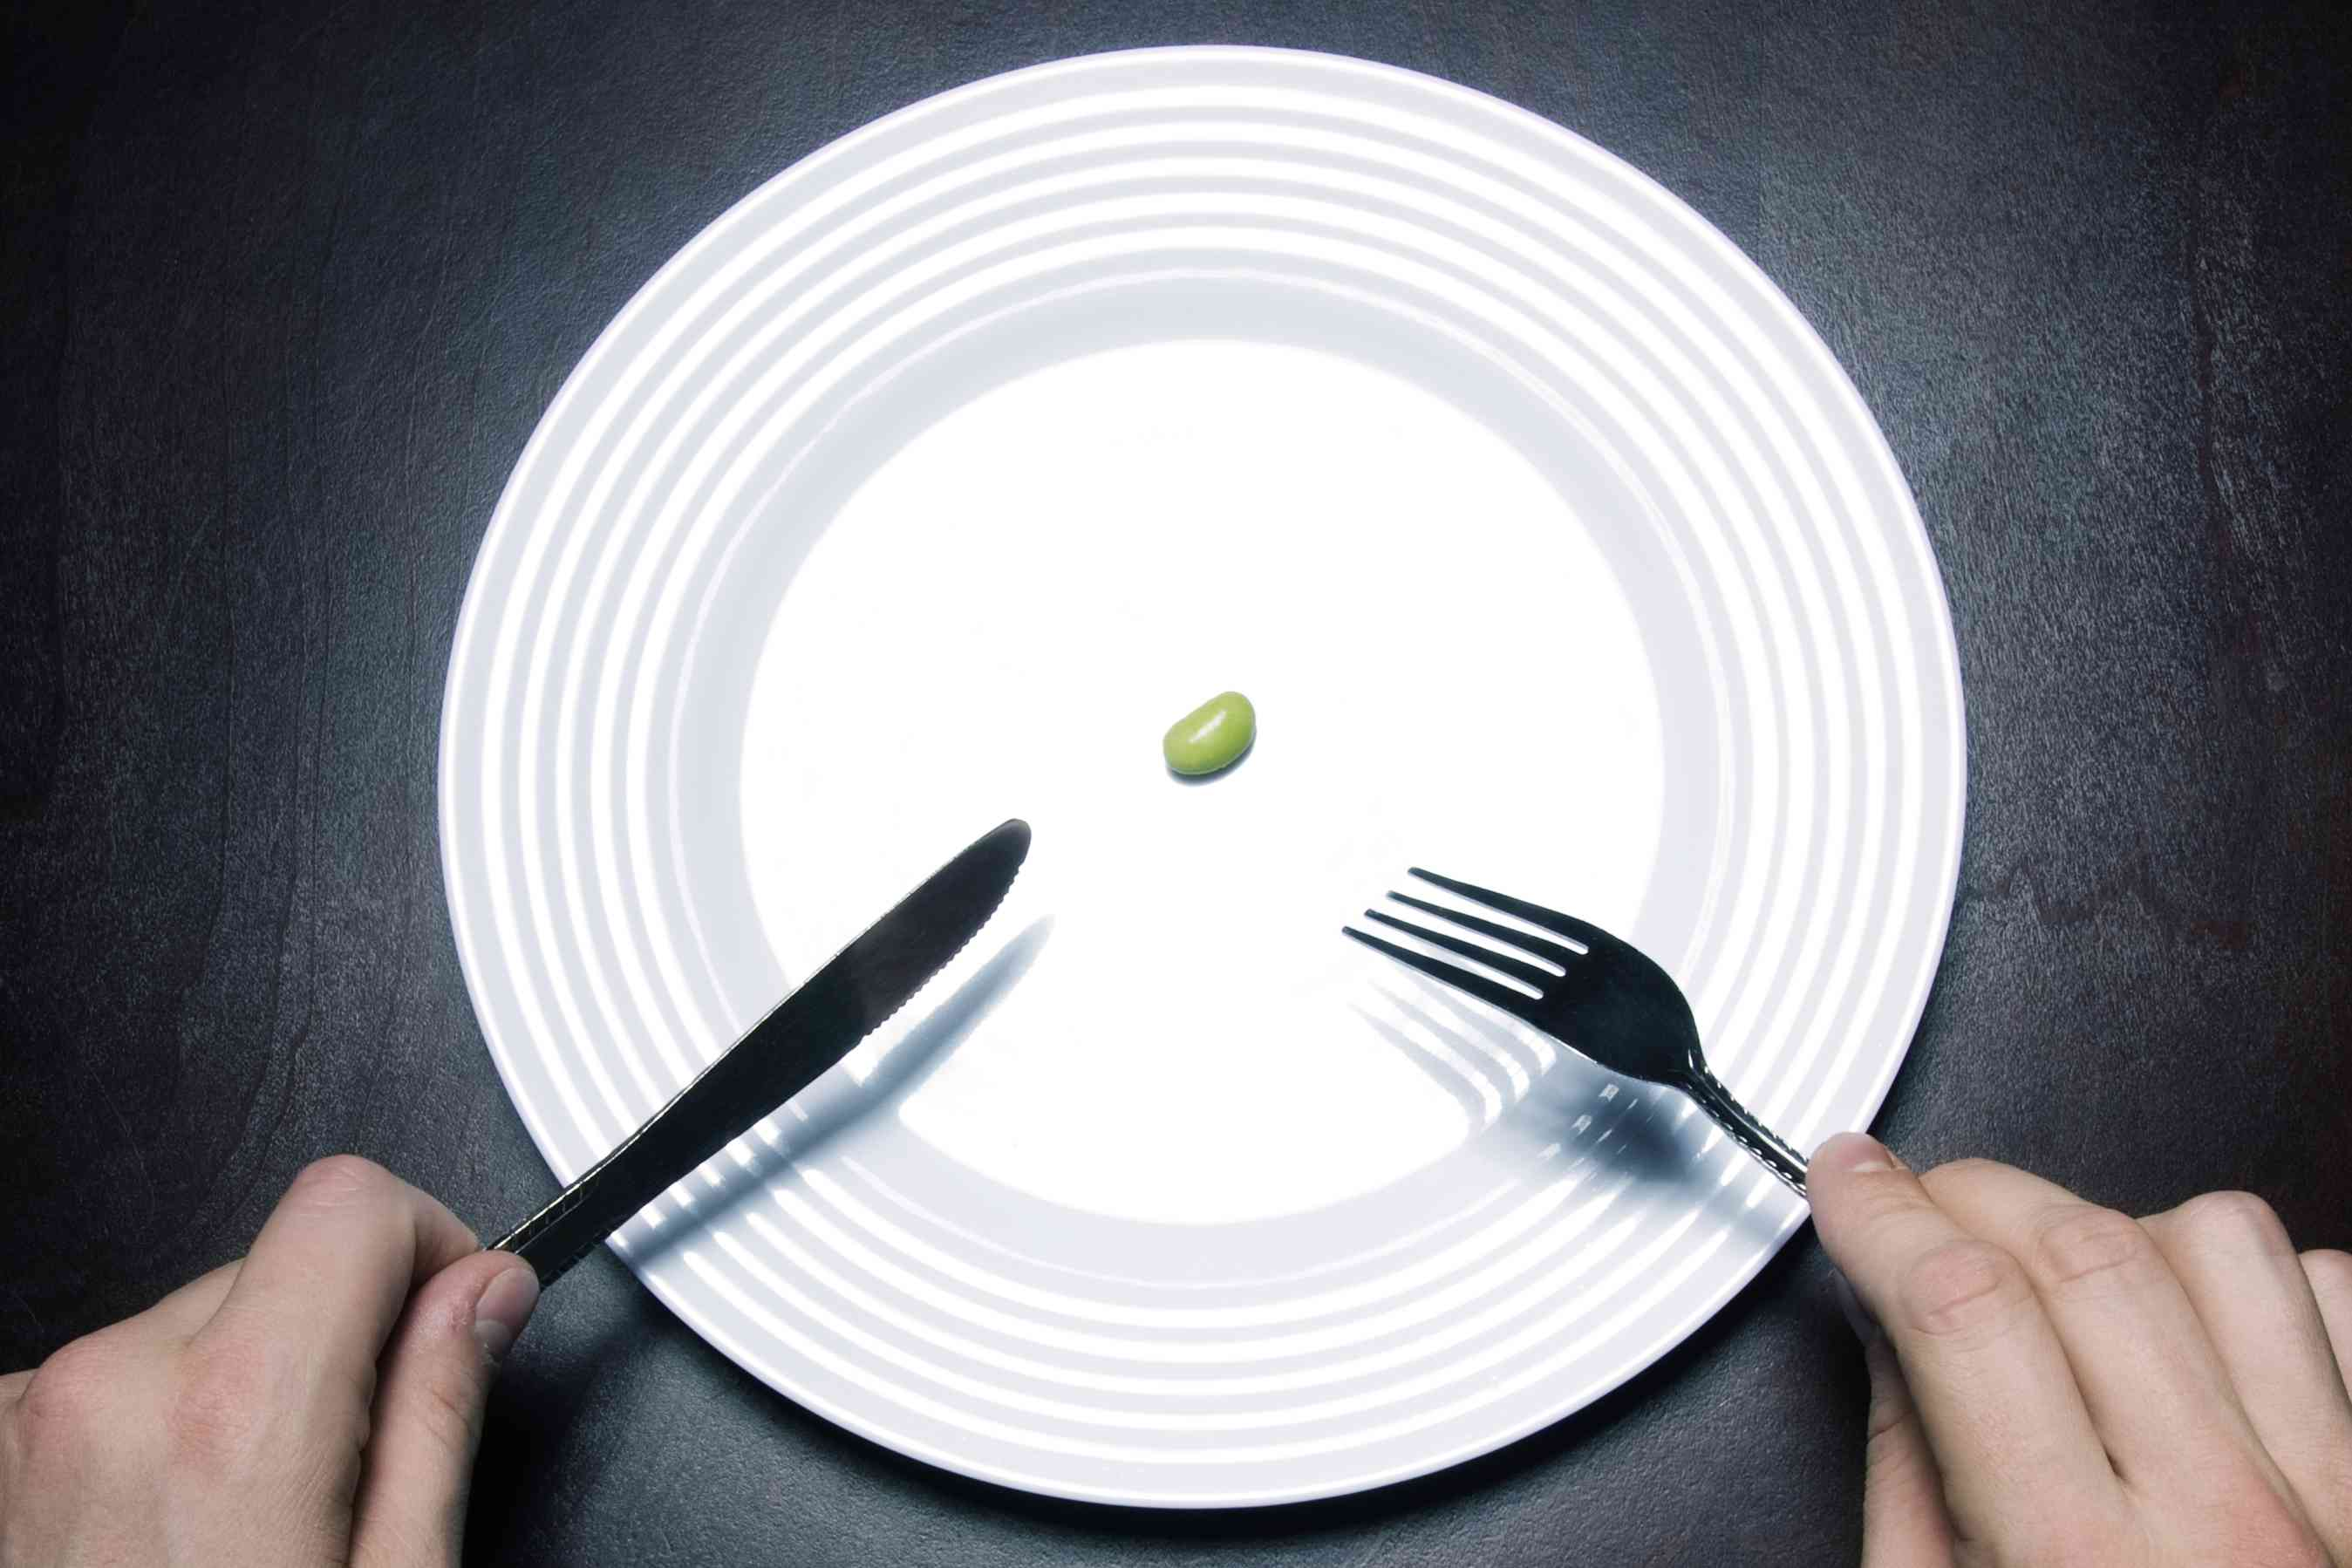 One bean on an otherwise empty white plate